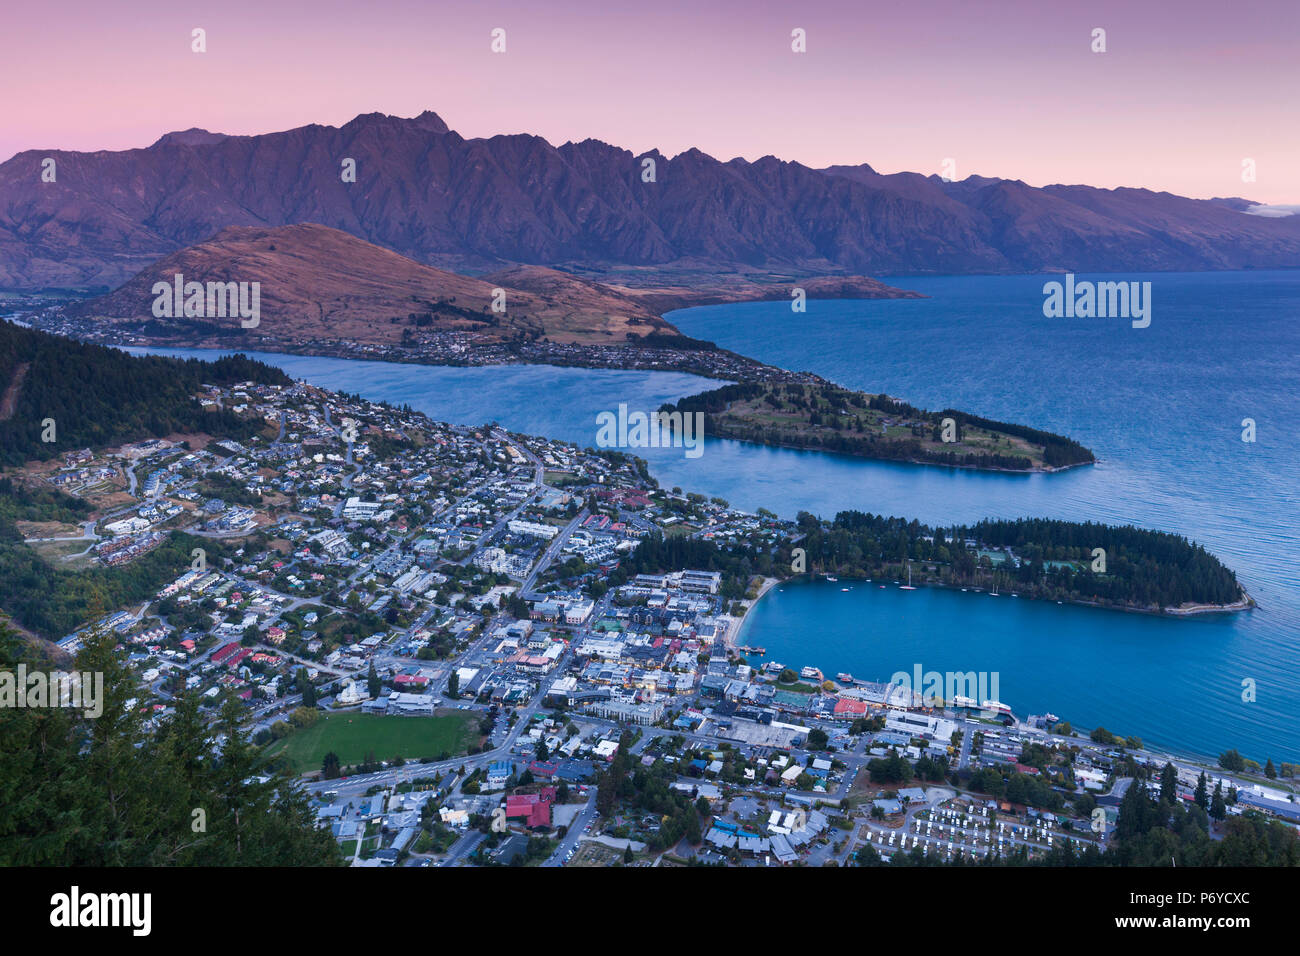 New Zealand, South Island, Otago, Queenstown, elevated town view with The Remarkables from the Skyline Gondola deck, dusk - Stock Image